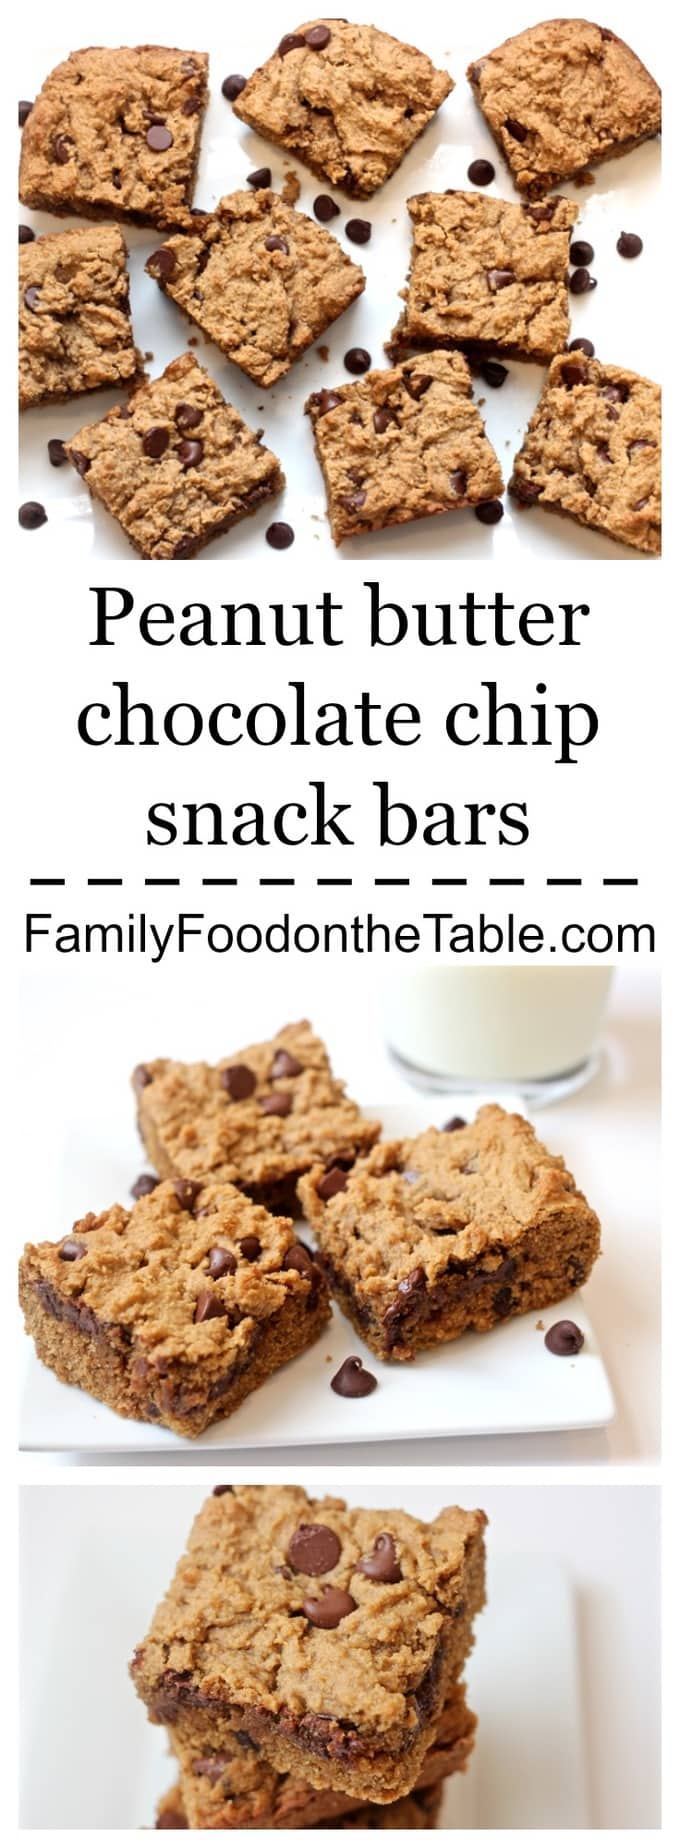 Peanut butter chocolate chips snack bars are whole grain, healthyish and so delicious. They taste like a giant, thick cookie! | FamilyFoodontheTable.com